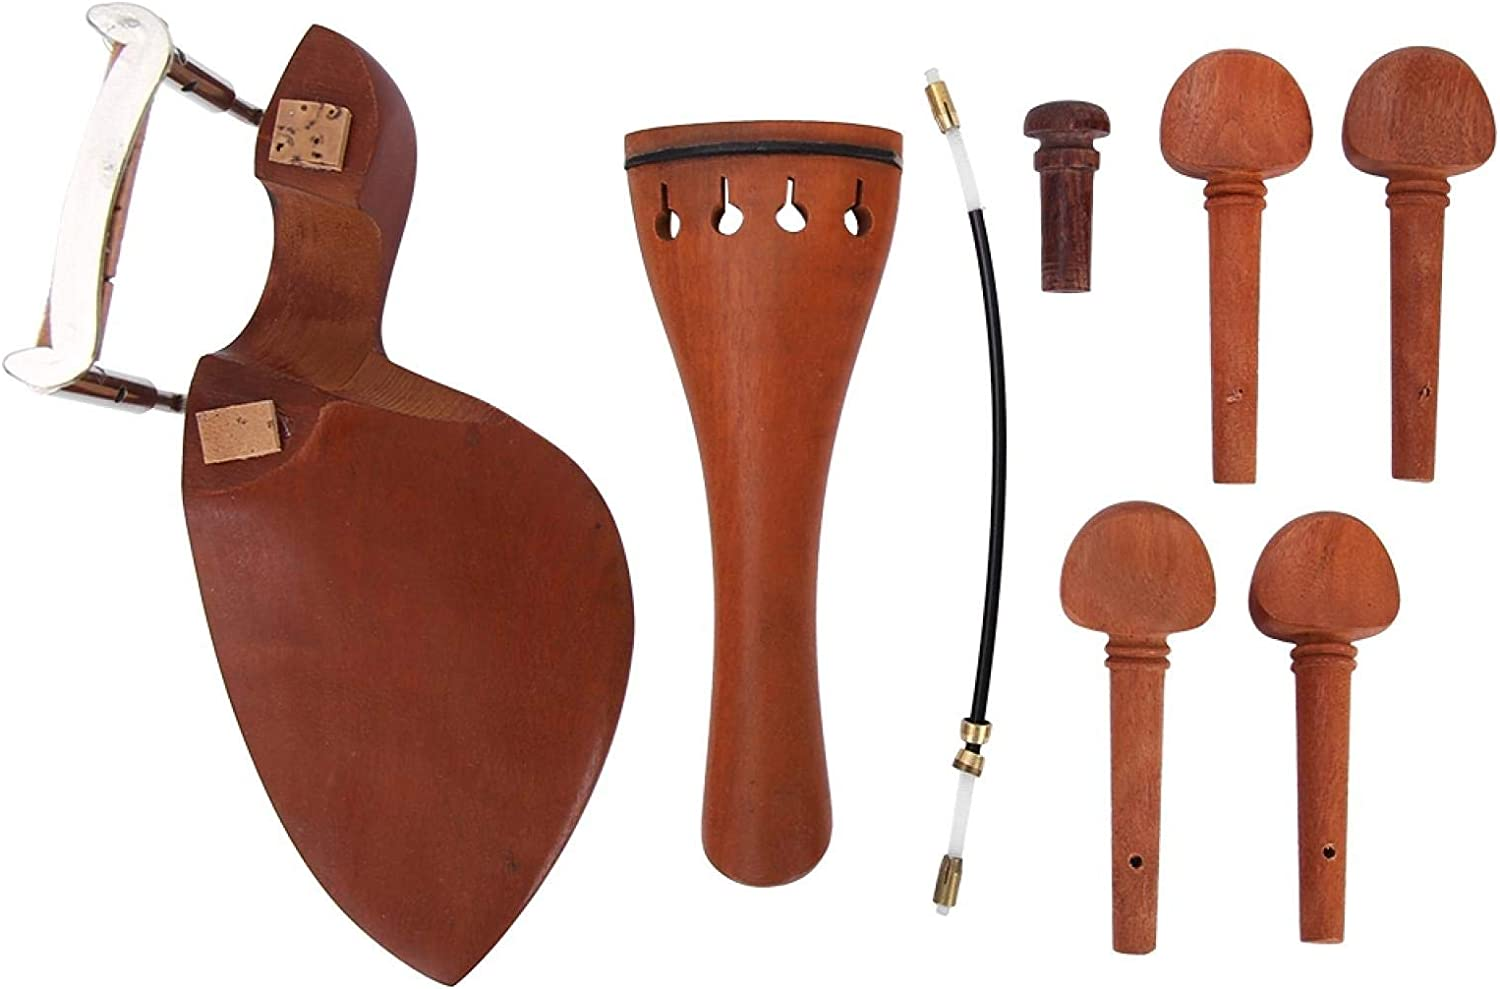 Wood Chin Rest OFFicial site Musical Popular overseas Instrument Violin Accessories Sturdy for